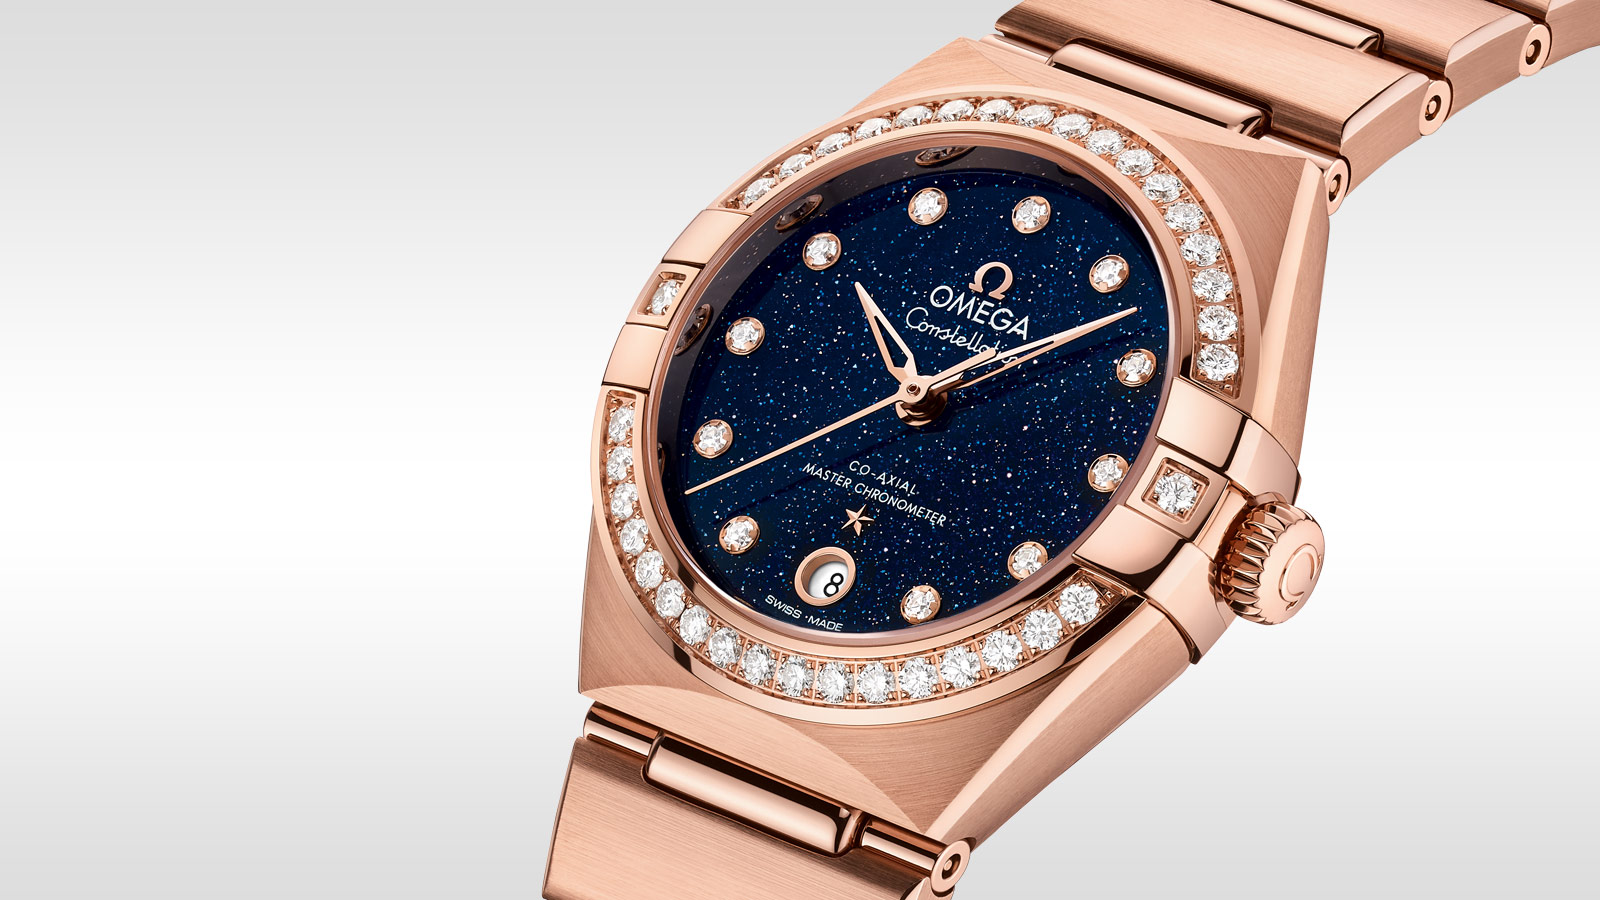 Constellation Constellation Constellation OMEGA Co‑Axial Master Chronometer 29 mm - 131.55.29.20.53.003 - Visualizzare 2